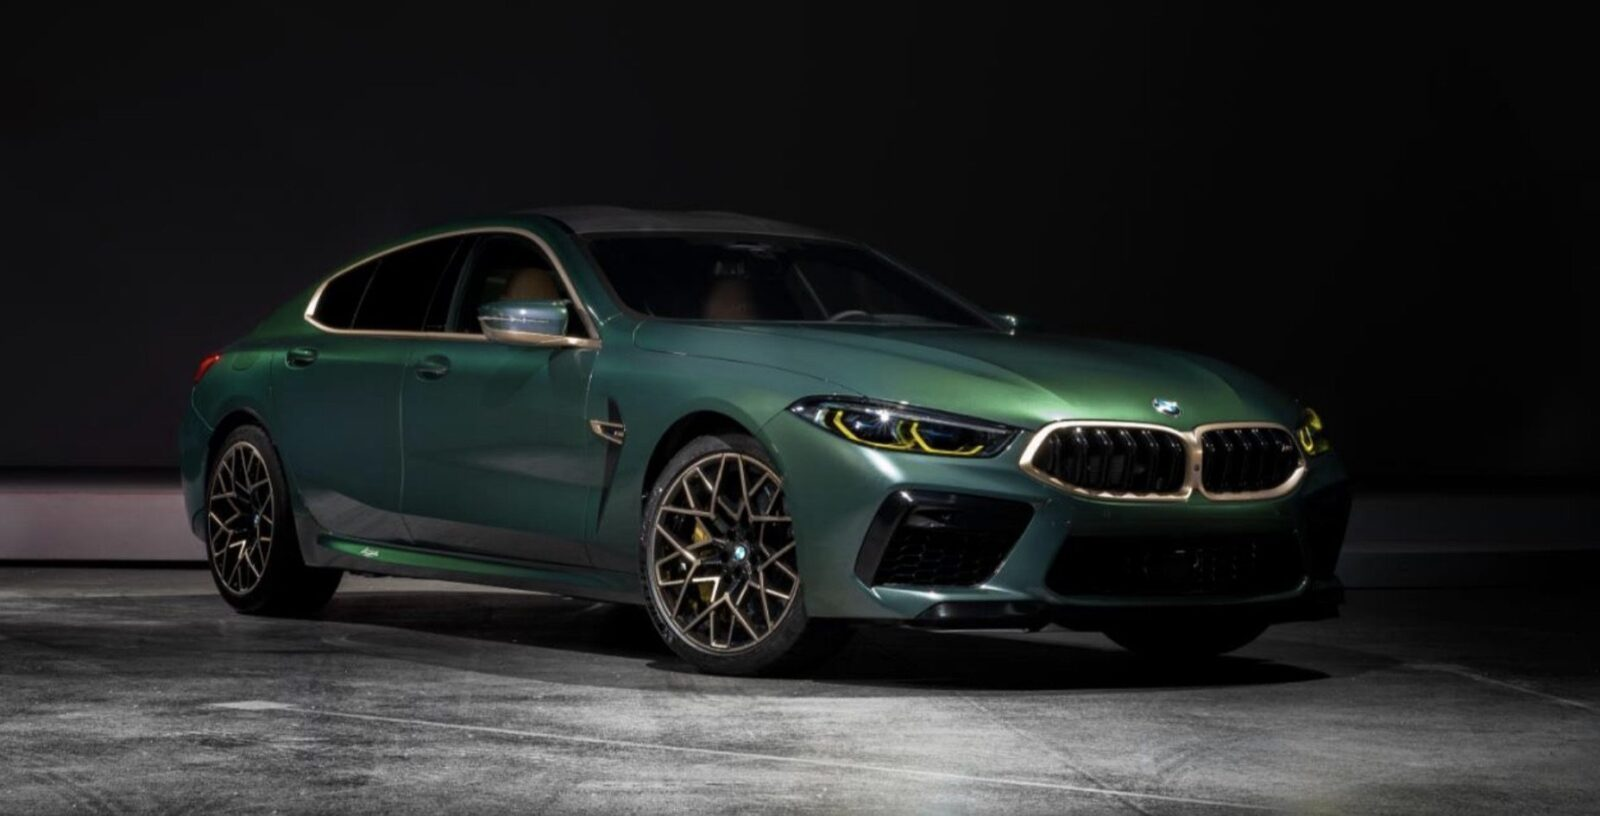 Exclusive Details About The Bmw M8 Gran Coupe First Edition In The Netherlands Techzle